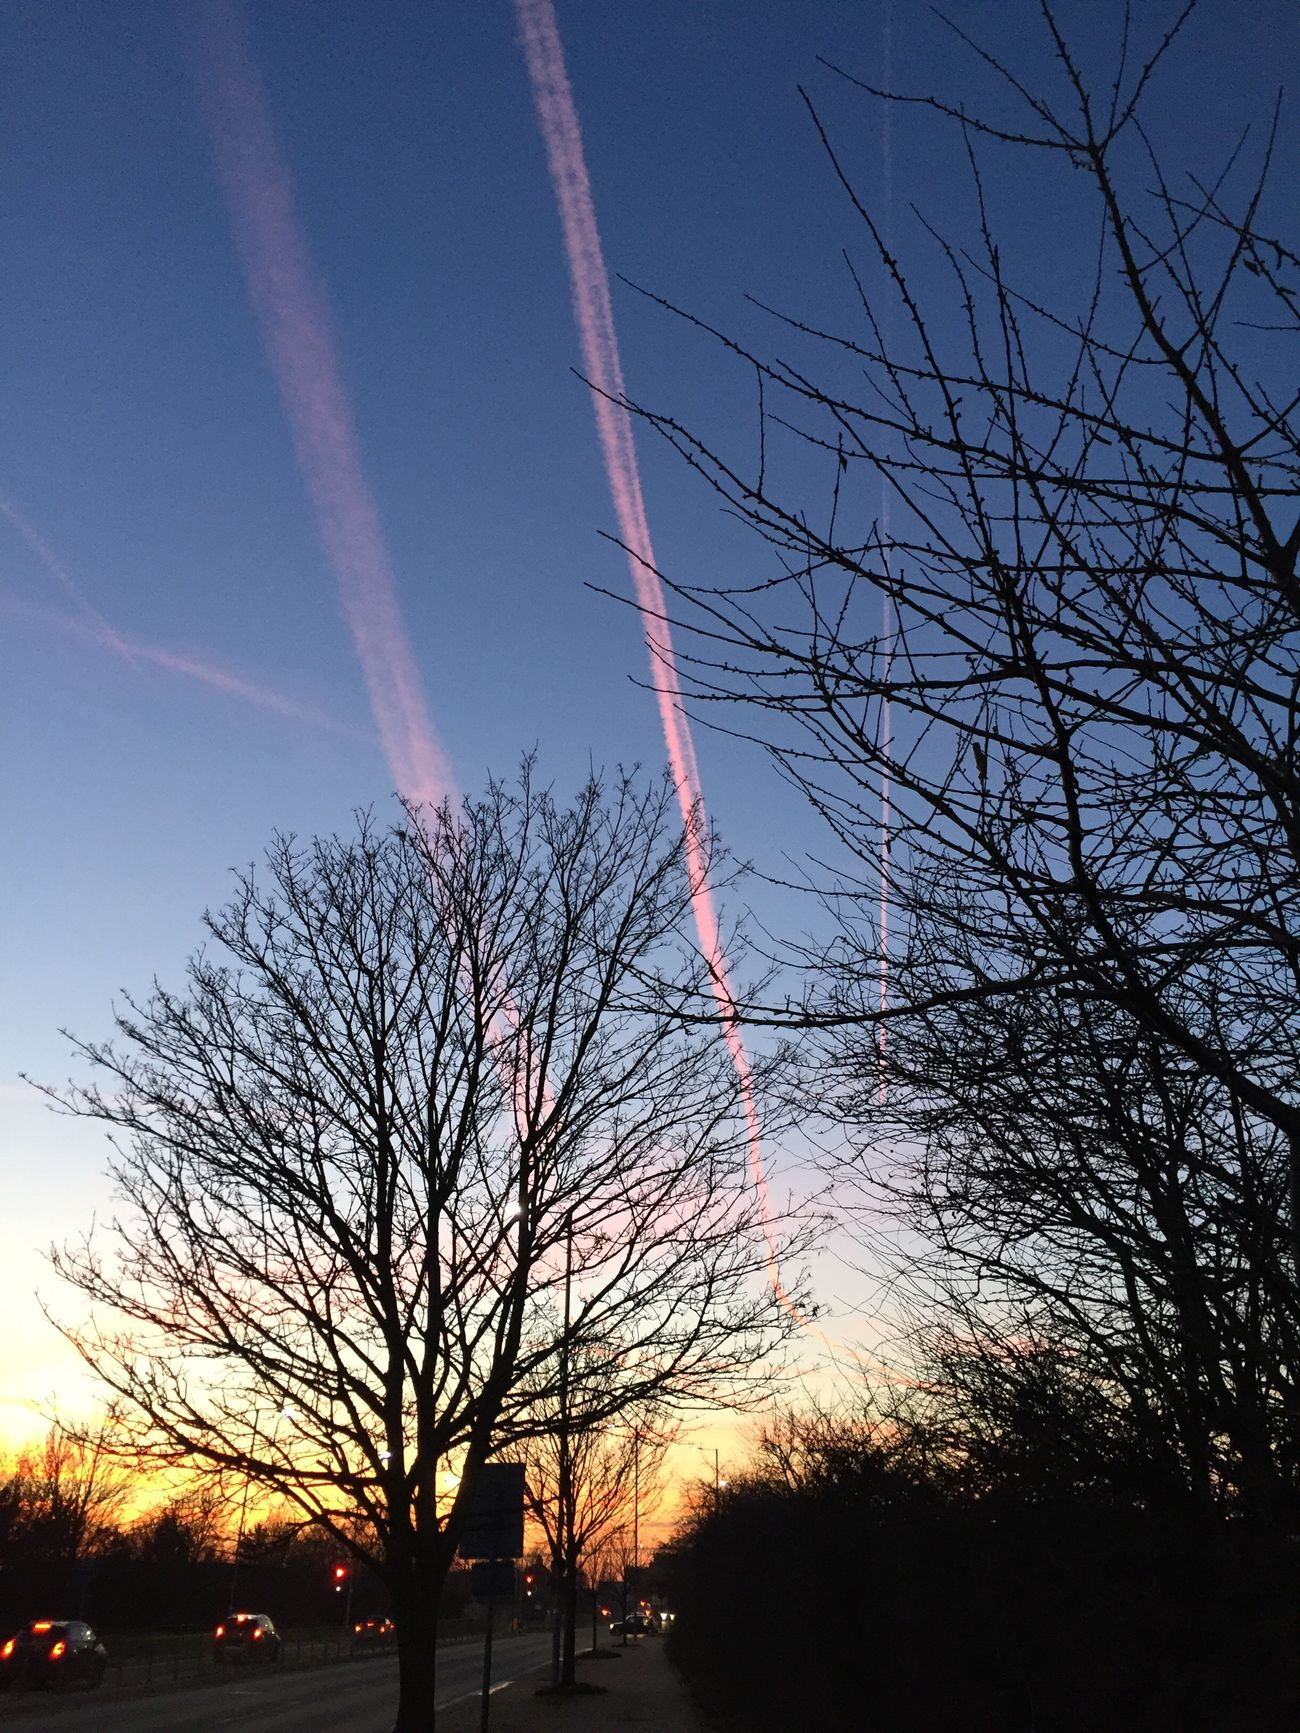 Dusk near an airport Sky Nature Sunset Bare Tree Beauty In Nature Tree Scenics Silhouette Low Angle View Outdoors No People Tranquility Tranquil Scene Growth Branch Cloud - Sky Vapor Trail Day